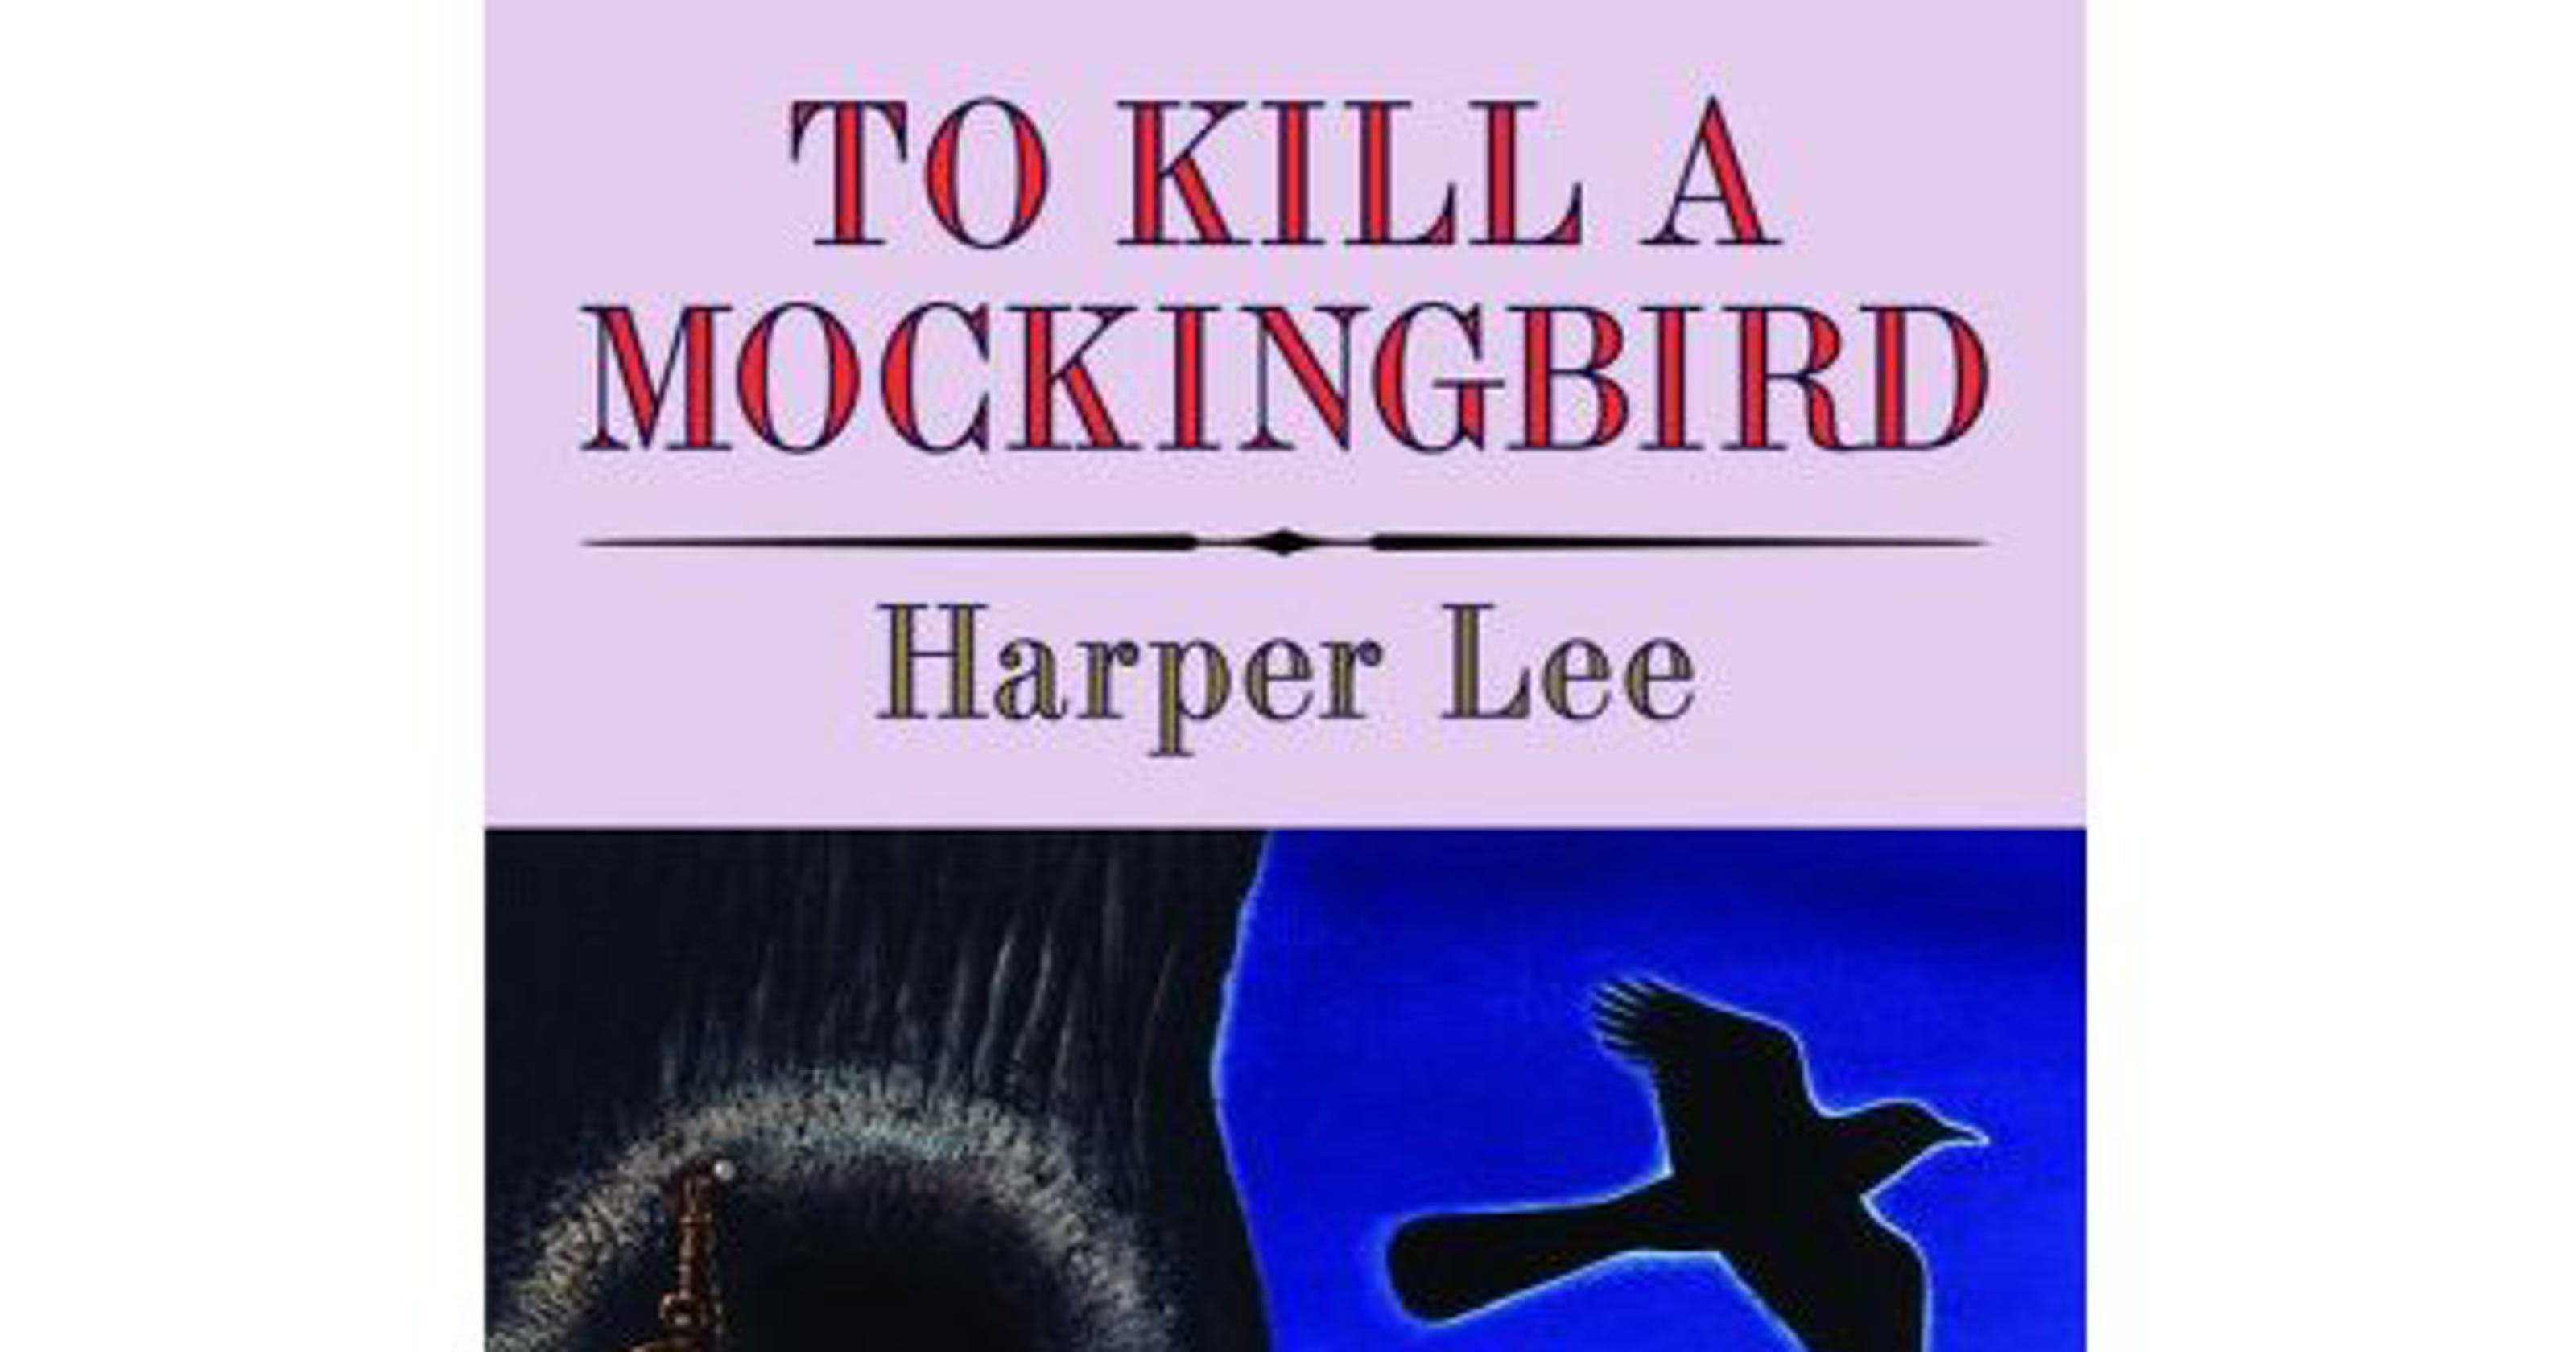 School District That Dropped To Kill A Mockingbird Misses The Point